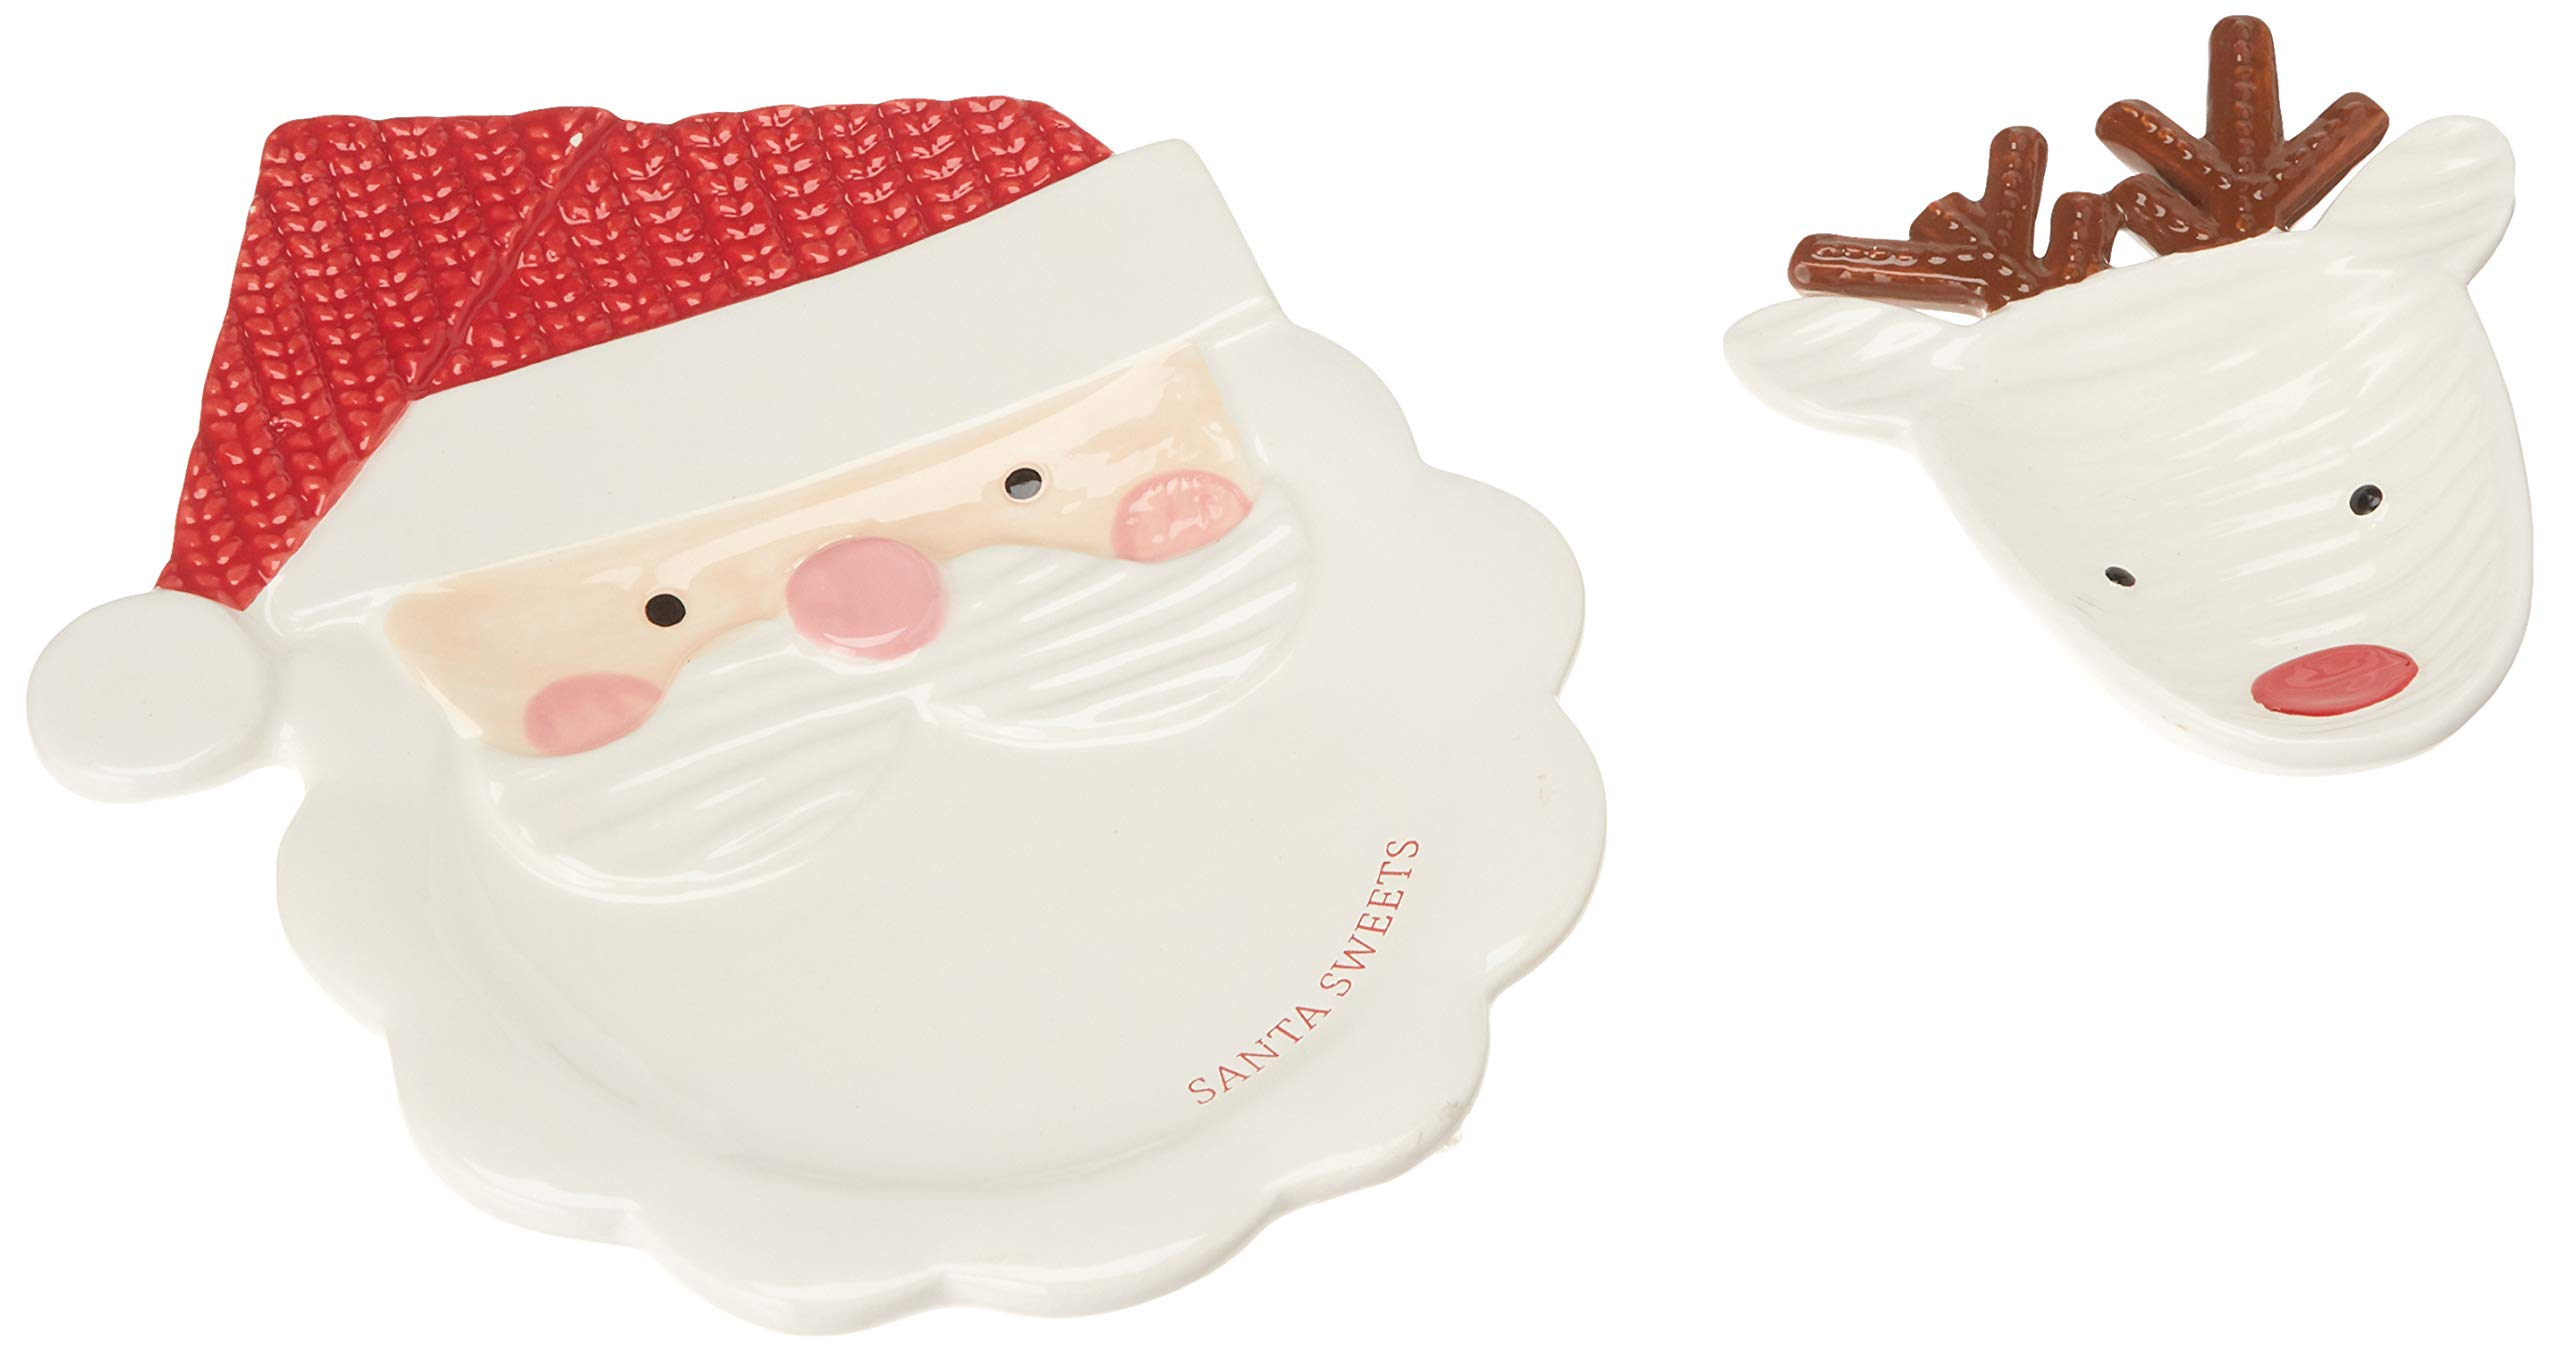 Mud Pie 4115025 Santa Sweets Cookie Plate Set, One Size, White/Red by Mud Pie